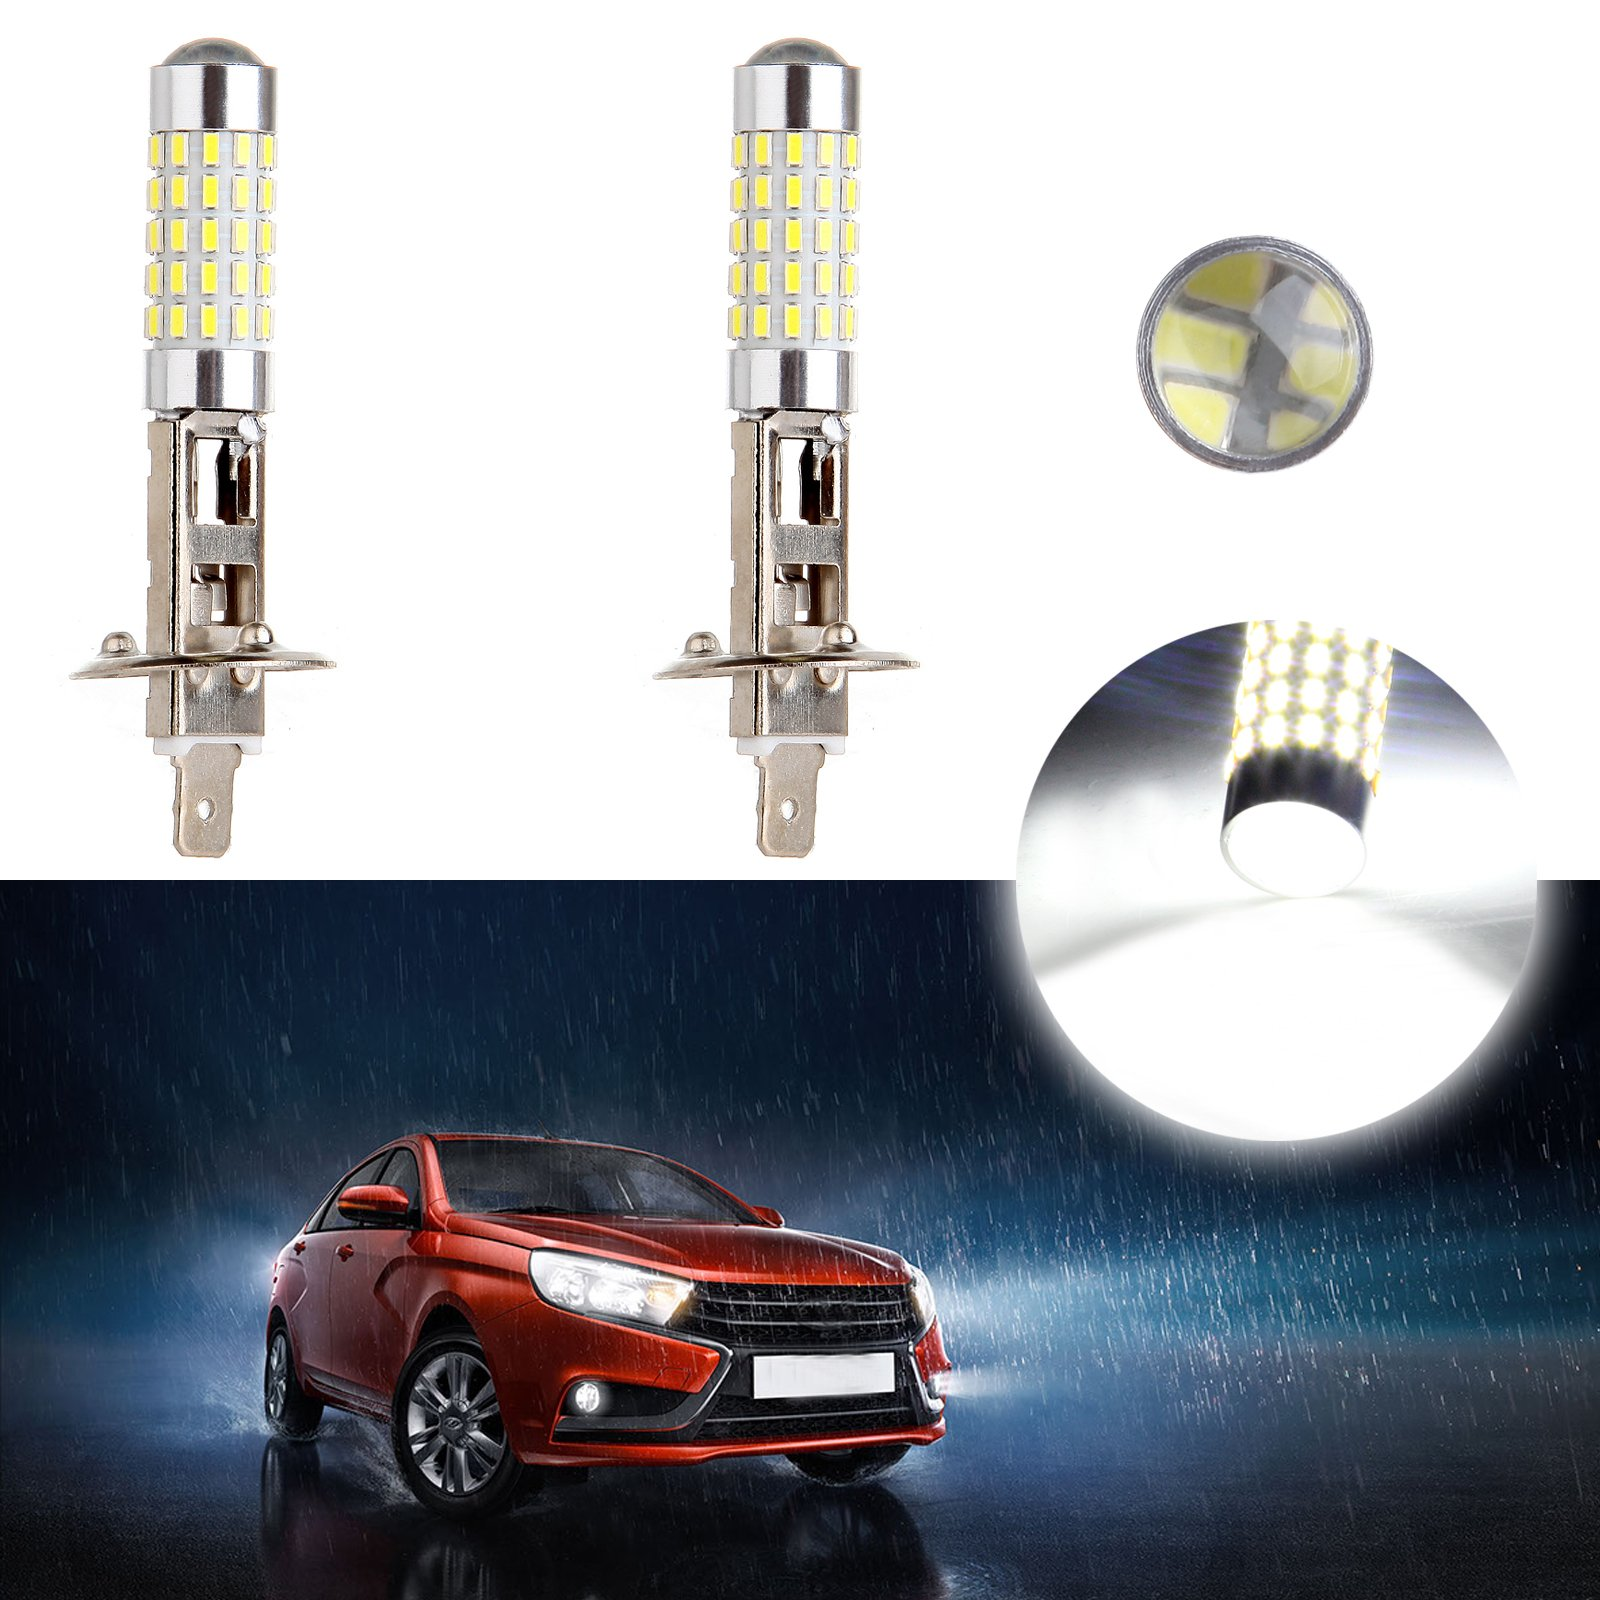 CCIYU 1157 2 Pack Xenon White 6000K 60W 6000LM H1 40W CREE High Power Low Beam LED Fog Light